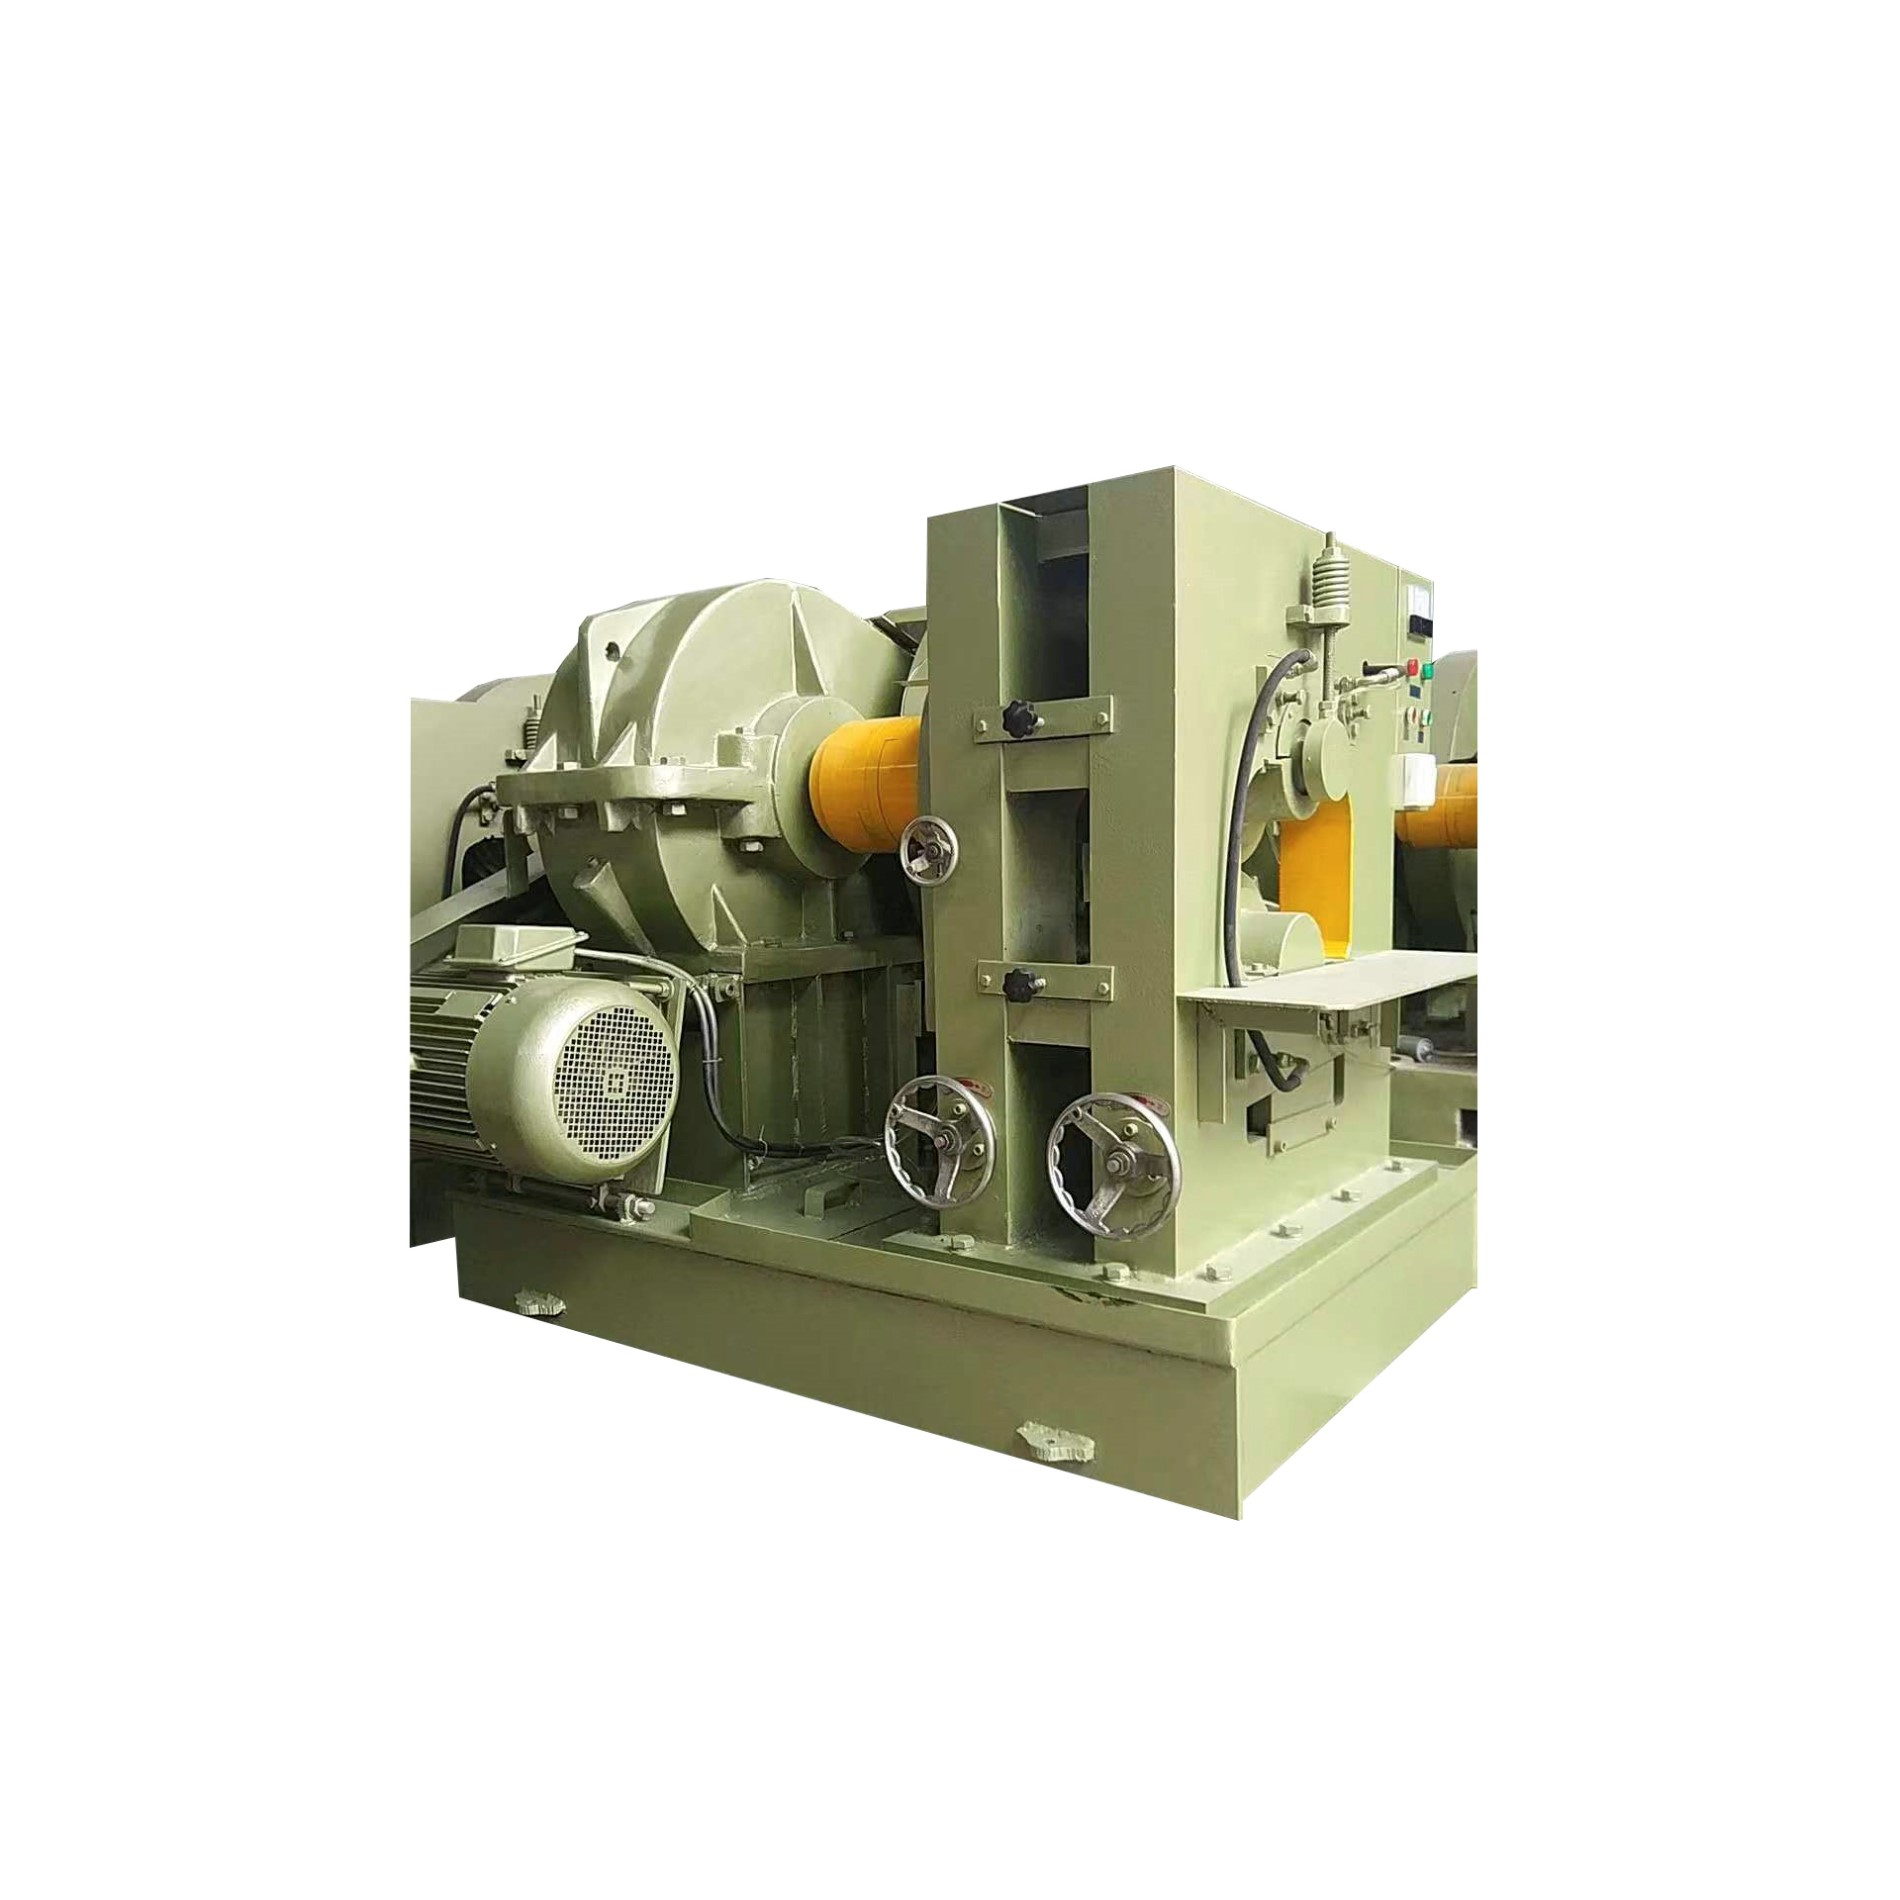 Rolling Machine For Cutlery And Kitchenware Manufacturers, Rolling Machine For Cutlery And Kitchenware Factory, Supply Rolling Machine For Cutlery And Kitchenware